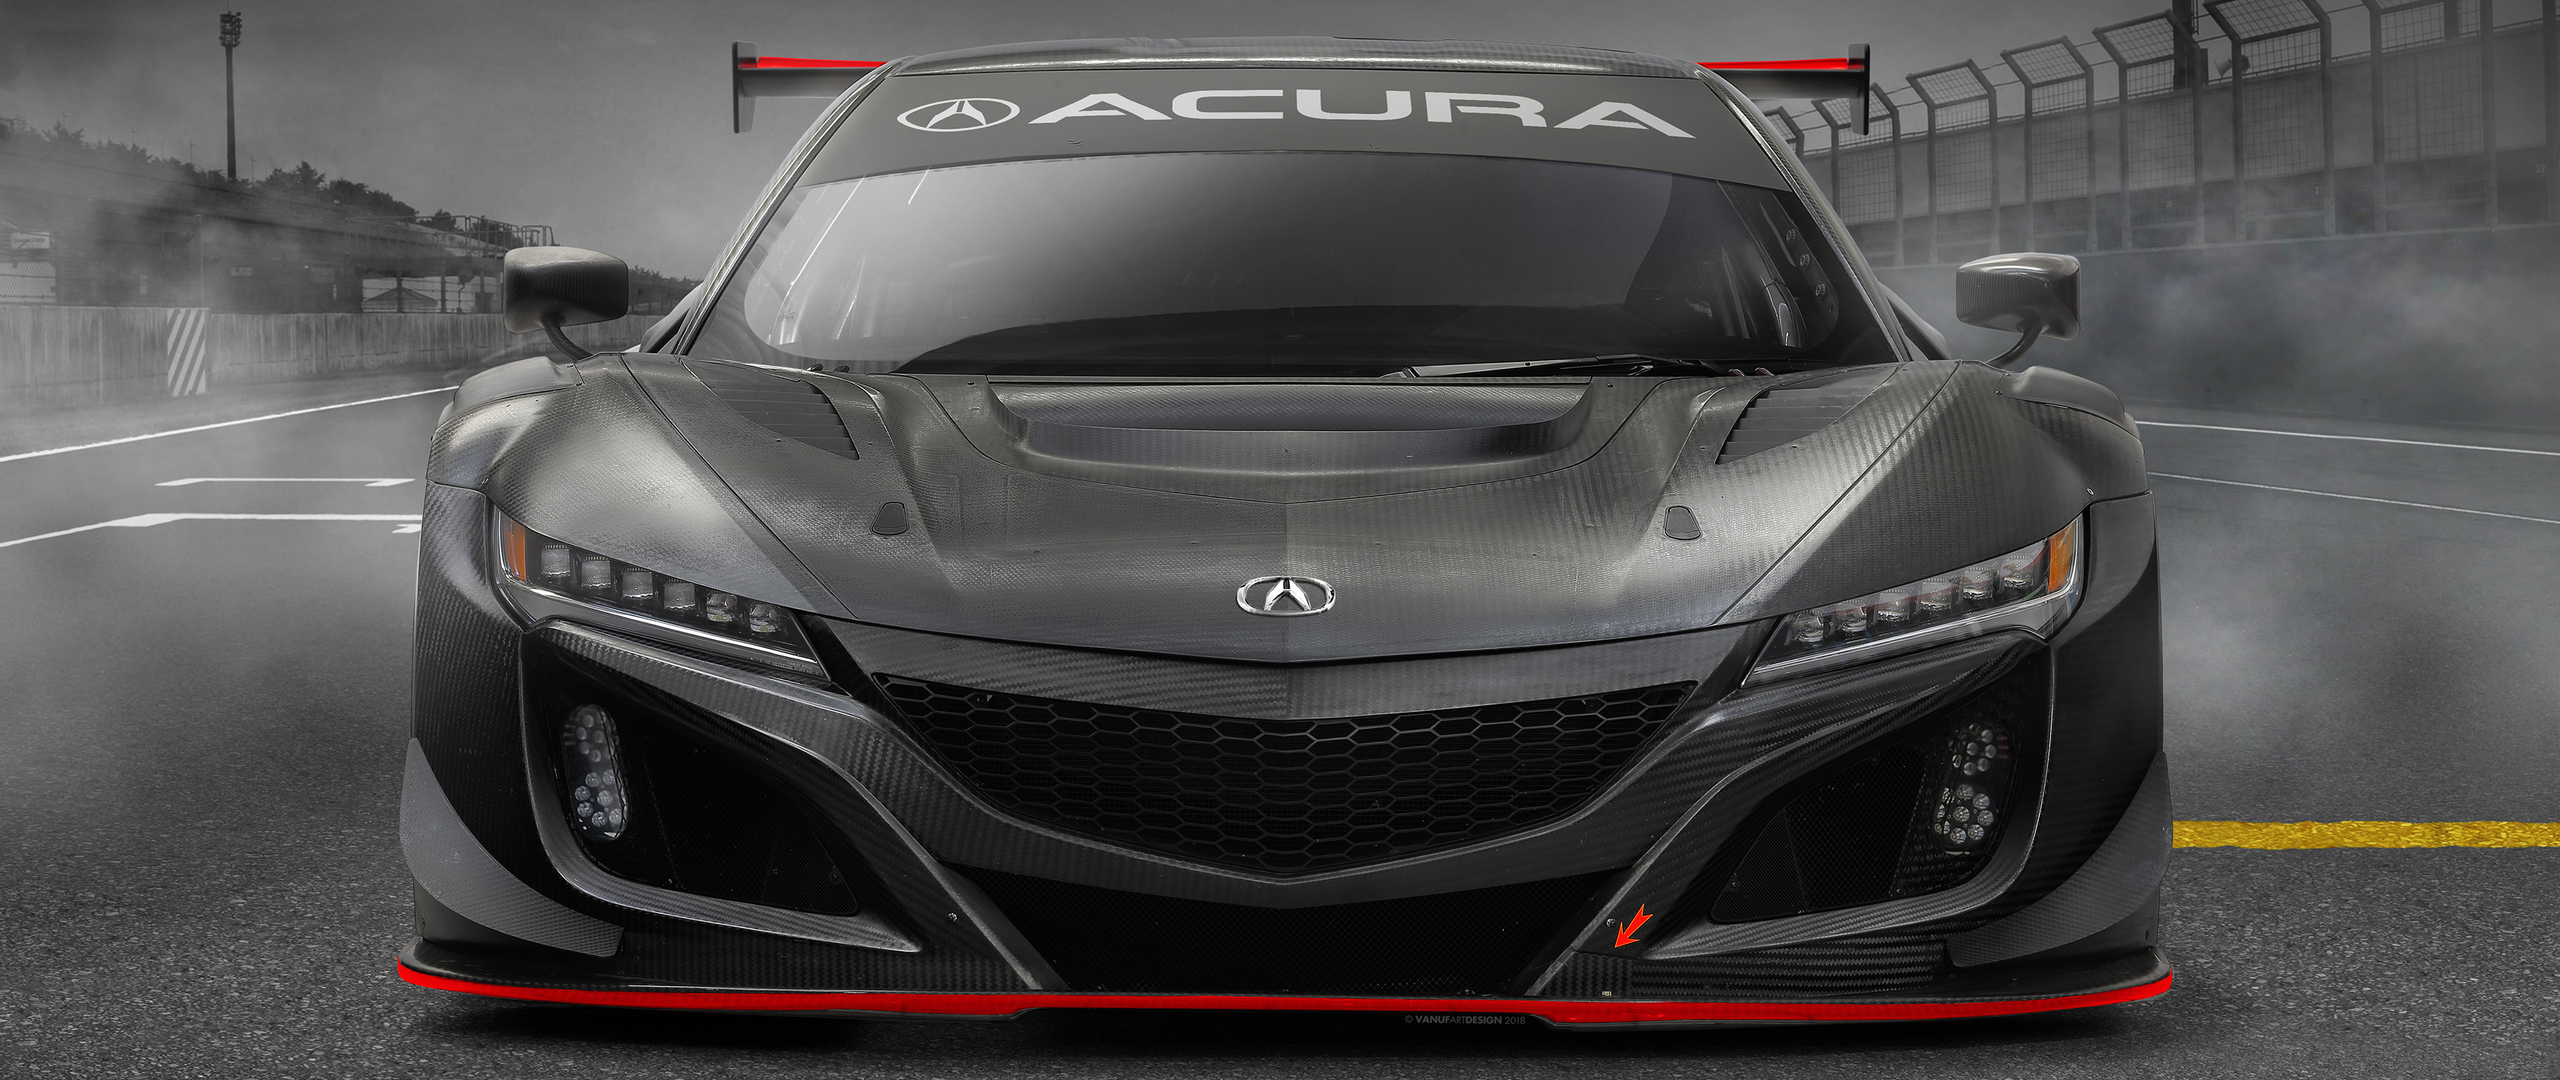 2560x1080 acura nsx gt3 evo 2019 front 2560x1080 resolution hd 4k wallpapers  images